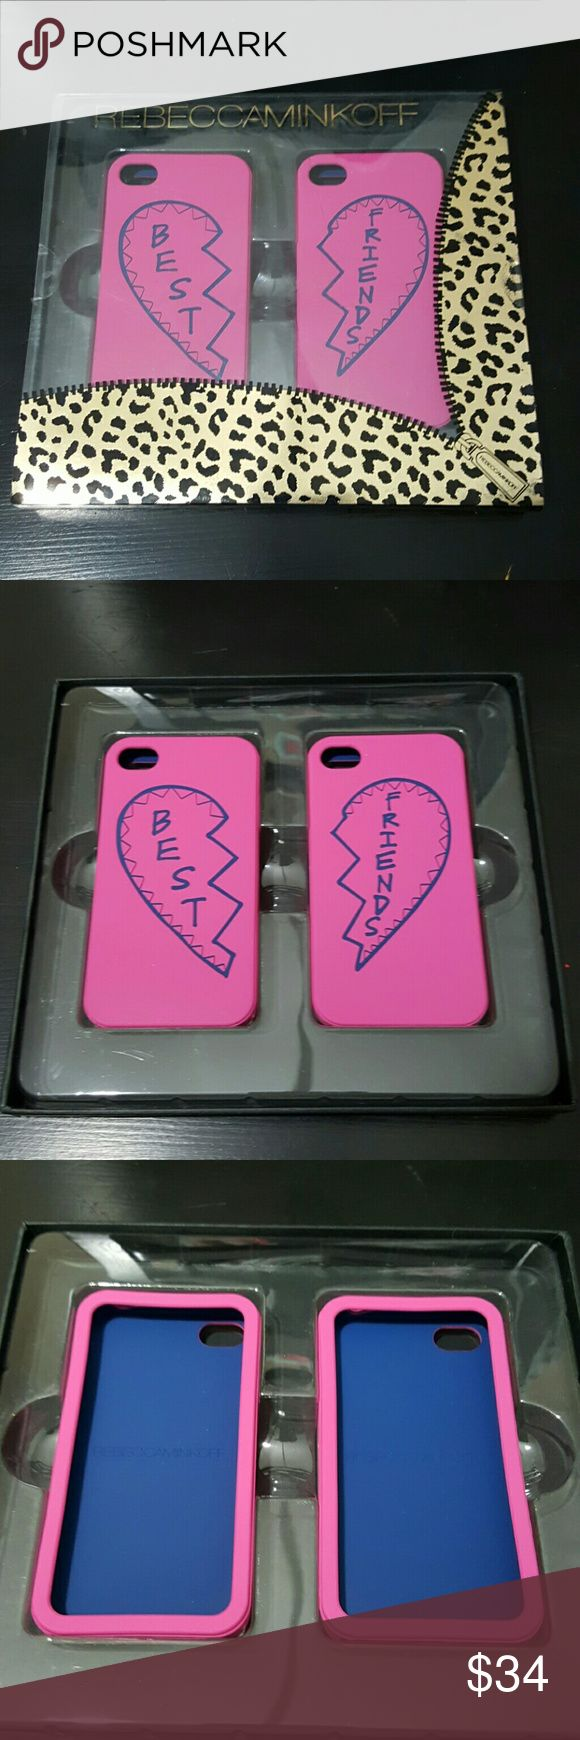 NWT Rebecca Minkoff iPhone 4 Best Friend Cases This is a set of iPhone cases from Rebecca Minkoff. Colors are bright pink and blue. Box has been opened, but cases have not need used. Also available in black & white and yellow & turquoise.  No trades. Rebecca Minkoff Accessories Phone Cases